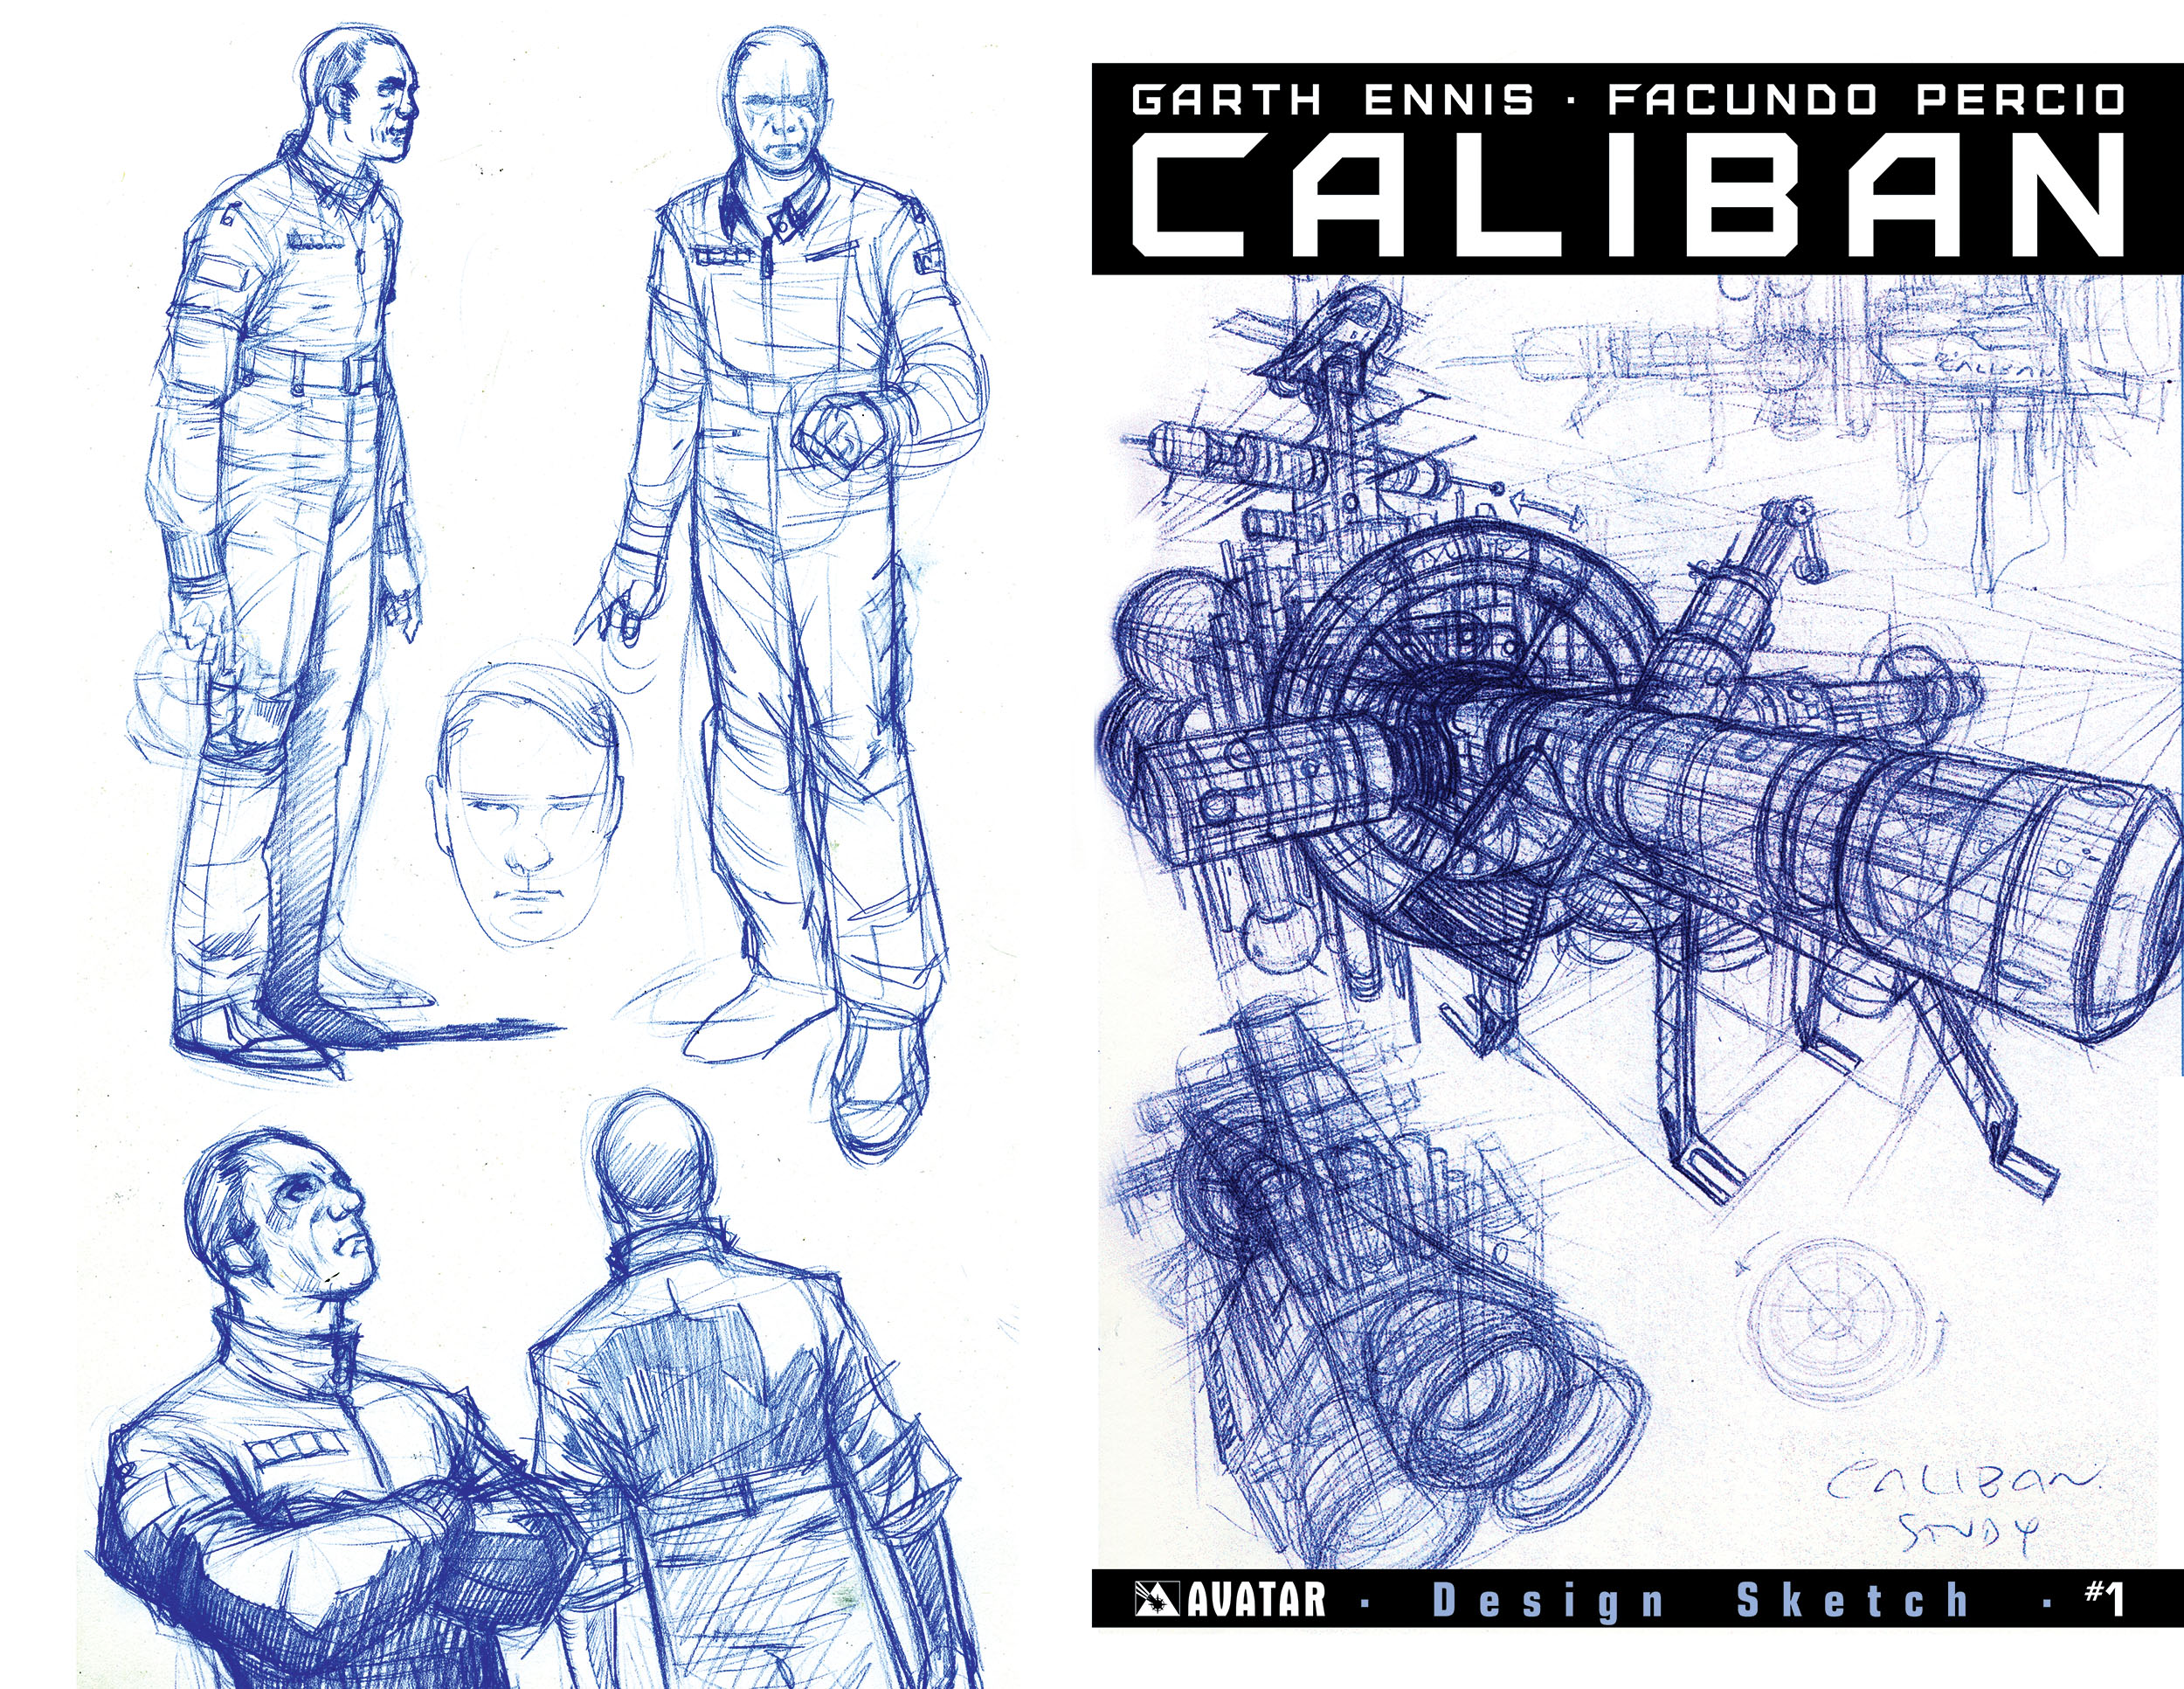 Read online Caliban comic -  Issue #1 - 4